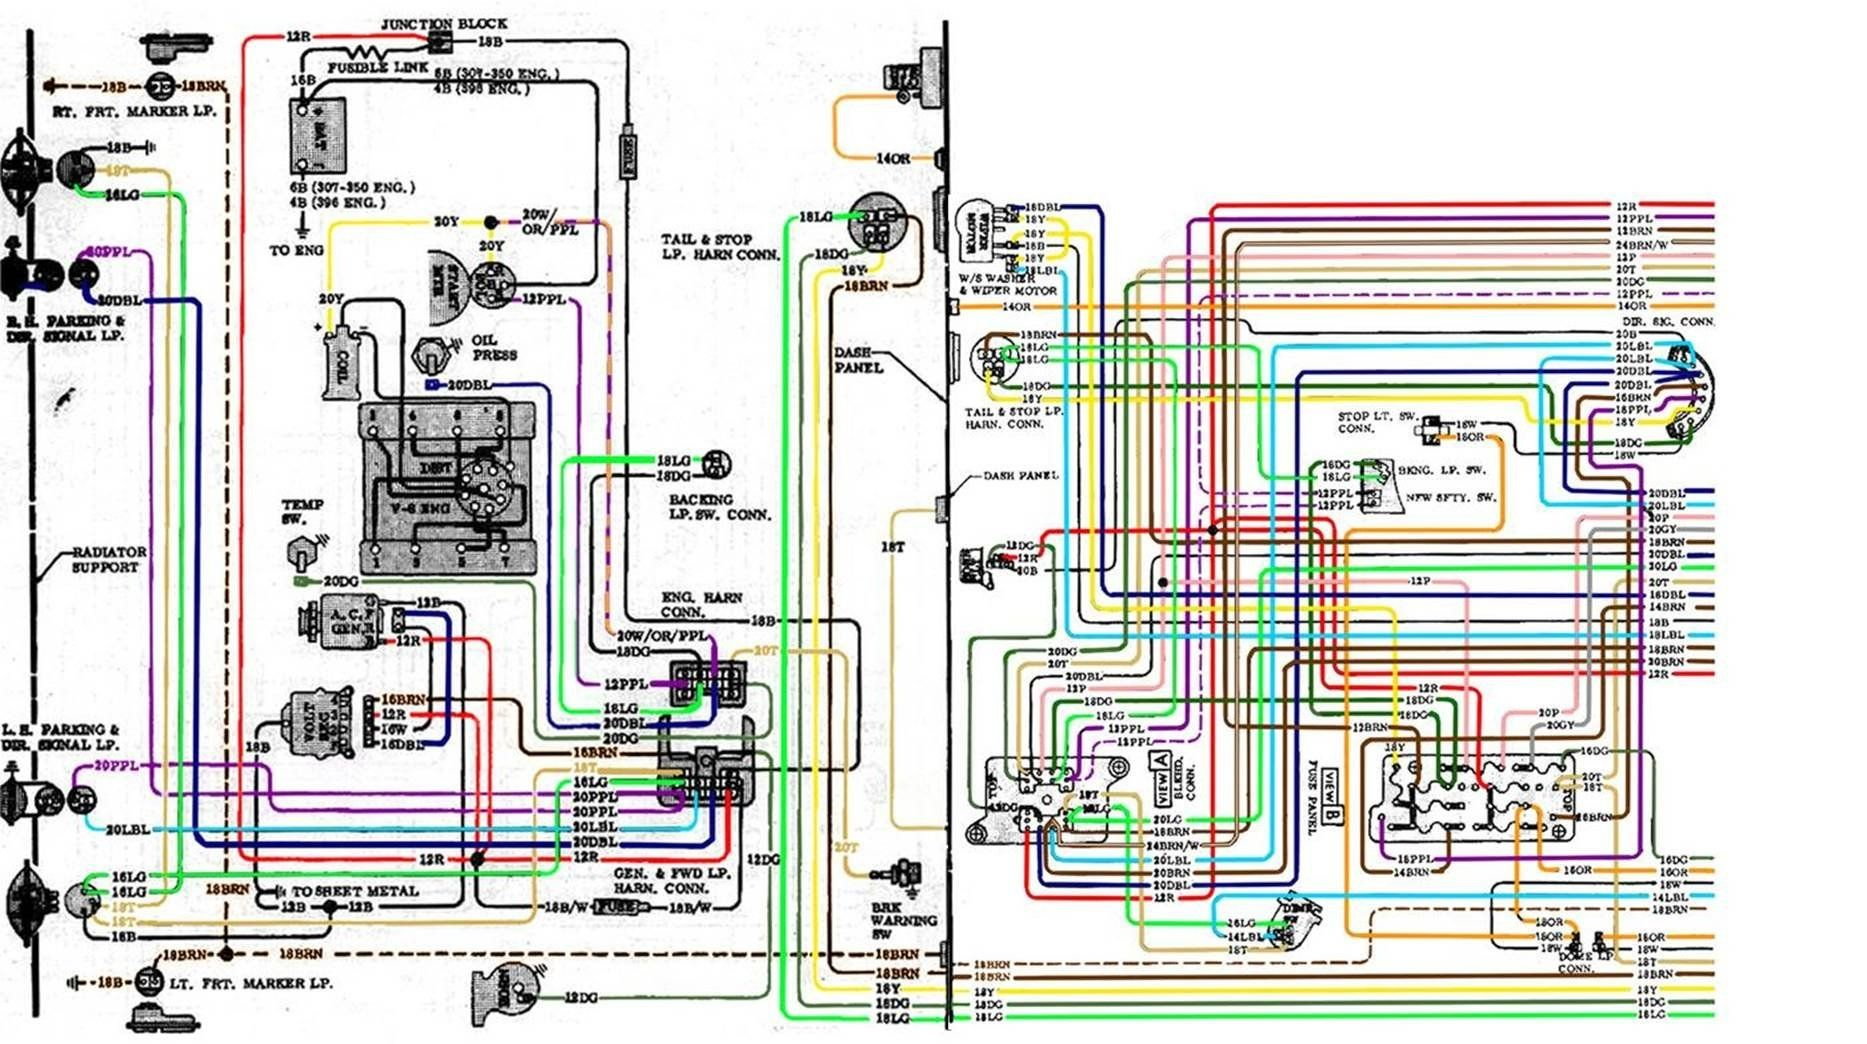 67 72 Chevy Wiring Diagram Intended For 1972 Chevy Truck Wiring